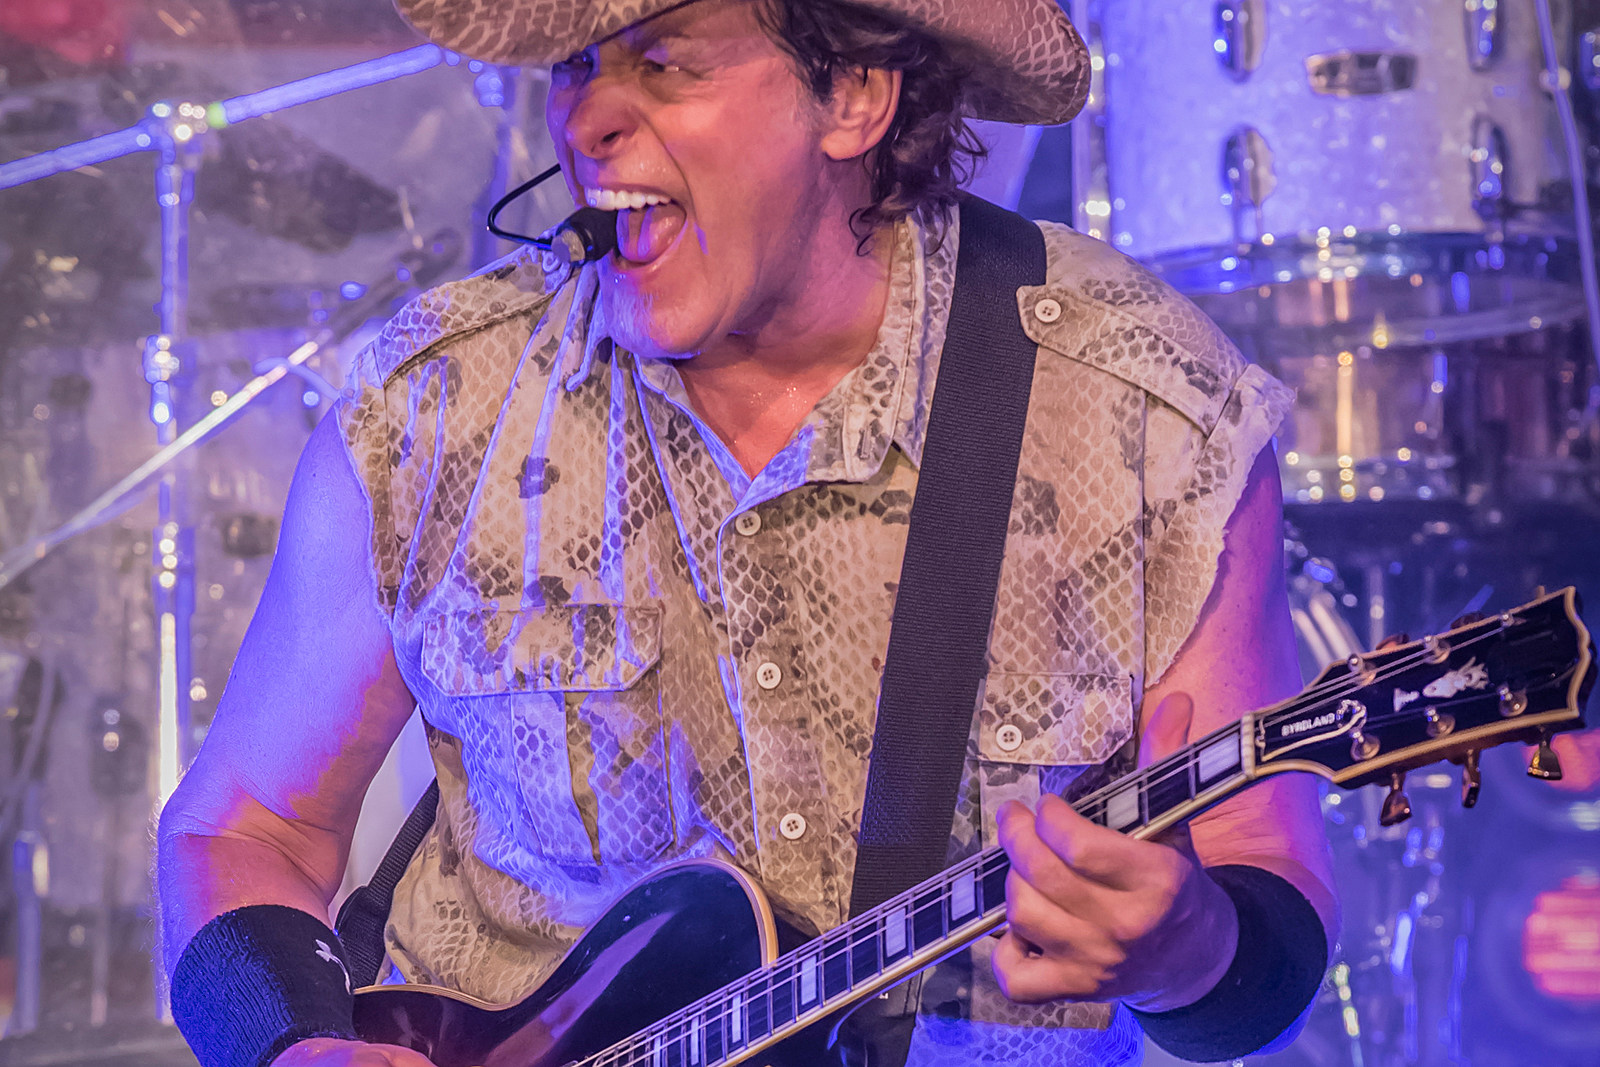 'We Just Captured the Beast': Ted Nugent's Track by Track Guide to 'The Music Made Me Do It'